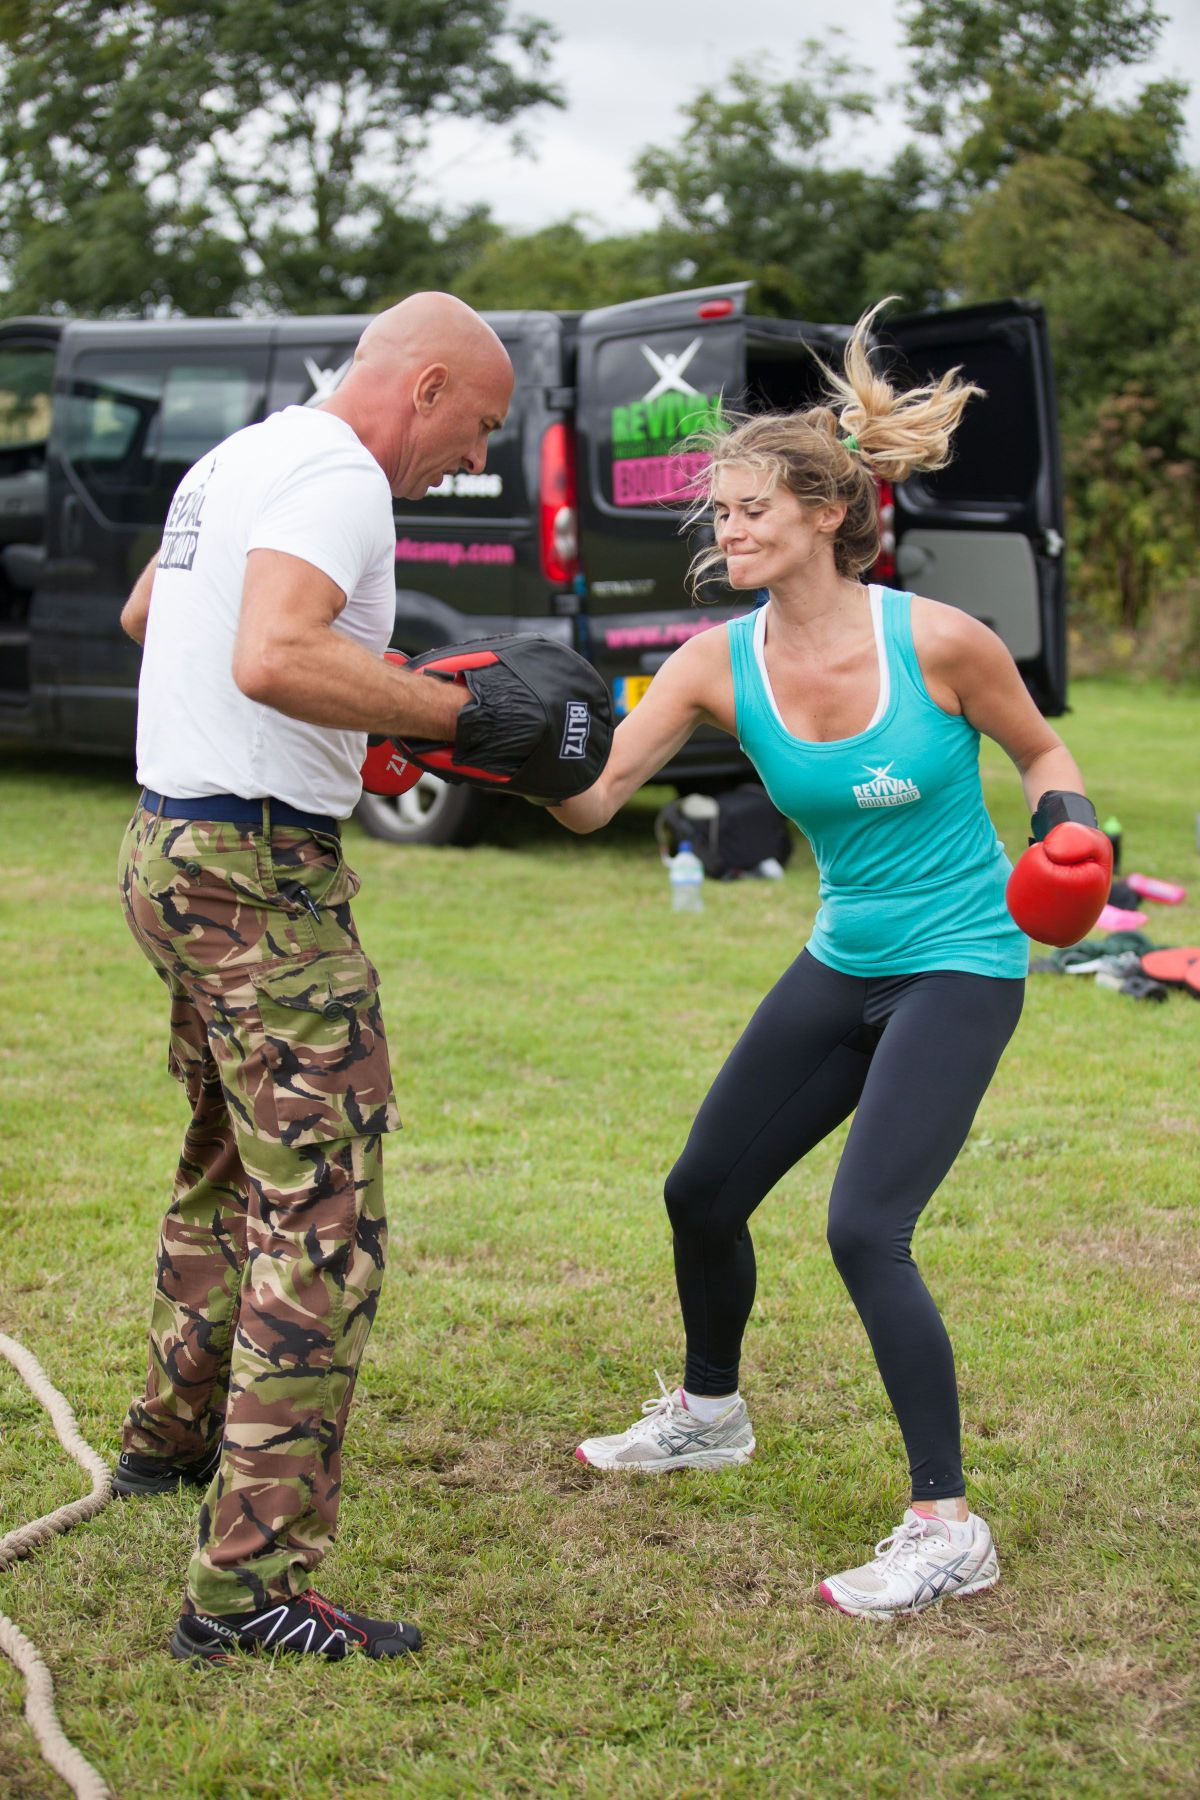 Rachel Shenton & Kim Tiddy At A Revival Bootcamp Session